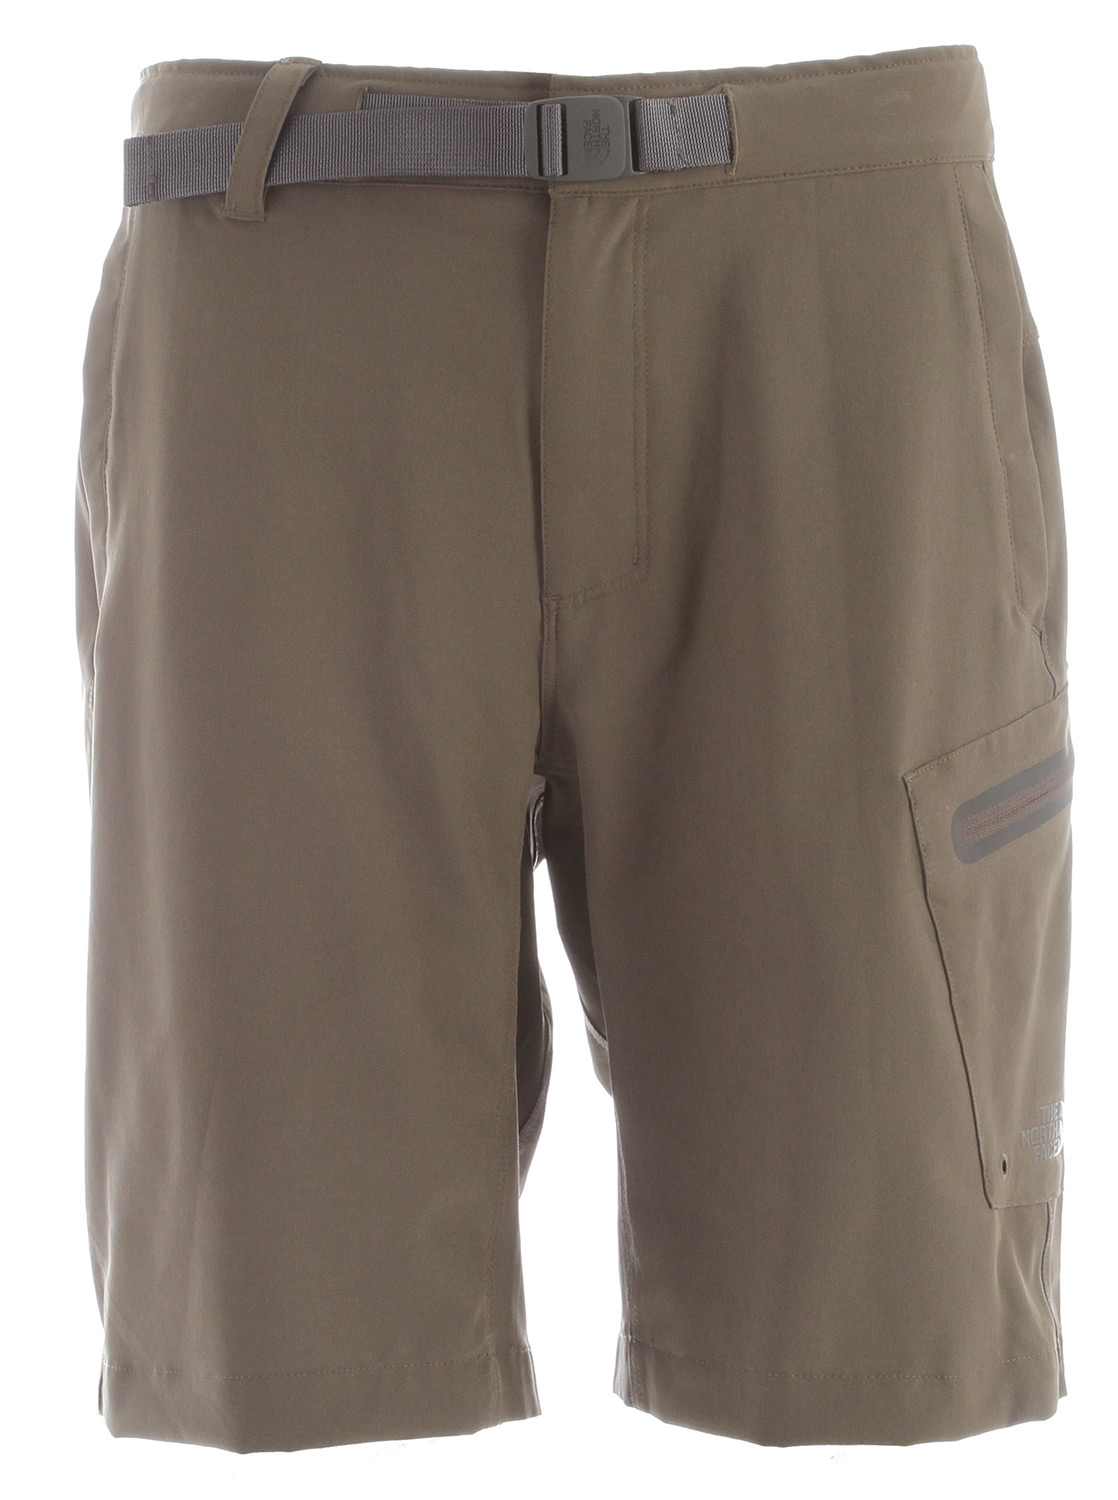 "Camp and Hike A lightweight, quick-drying, stretch short that offers all-day comfort for a wide range of water activities. Key Features of The North Face Apex Washoe Hiking Shorts:  Lightweight, four-way stretch TNF Apex Aerobic  Quick-drying performance  Web belt and buckle  Crotch gusset  Infused cargo zip pocket  Back patch-on pocket  Relaxed fit  Ultraviolet Protection Factor (UPF  50  Avg weight: 240 g (8 oz   Inseam: R 10""  Fabric: 90D 157 g/m2 (5.53 oz/yd2  89% polyester, 11% elastane TNF Apex Aerobic - $44.95"